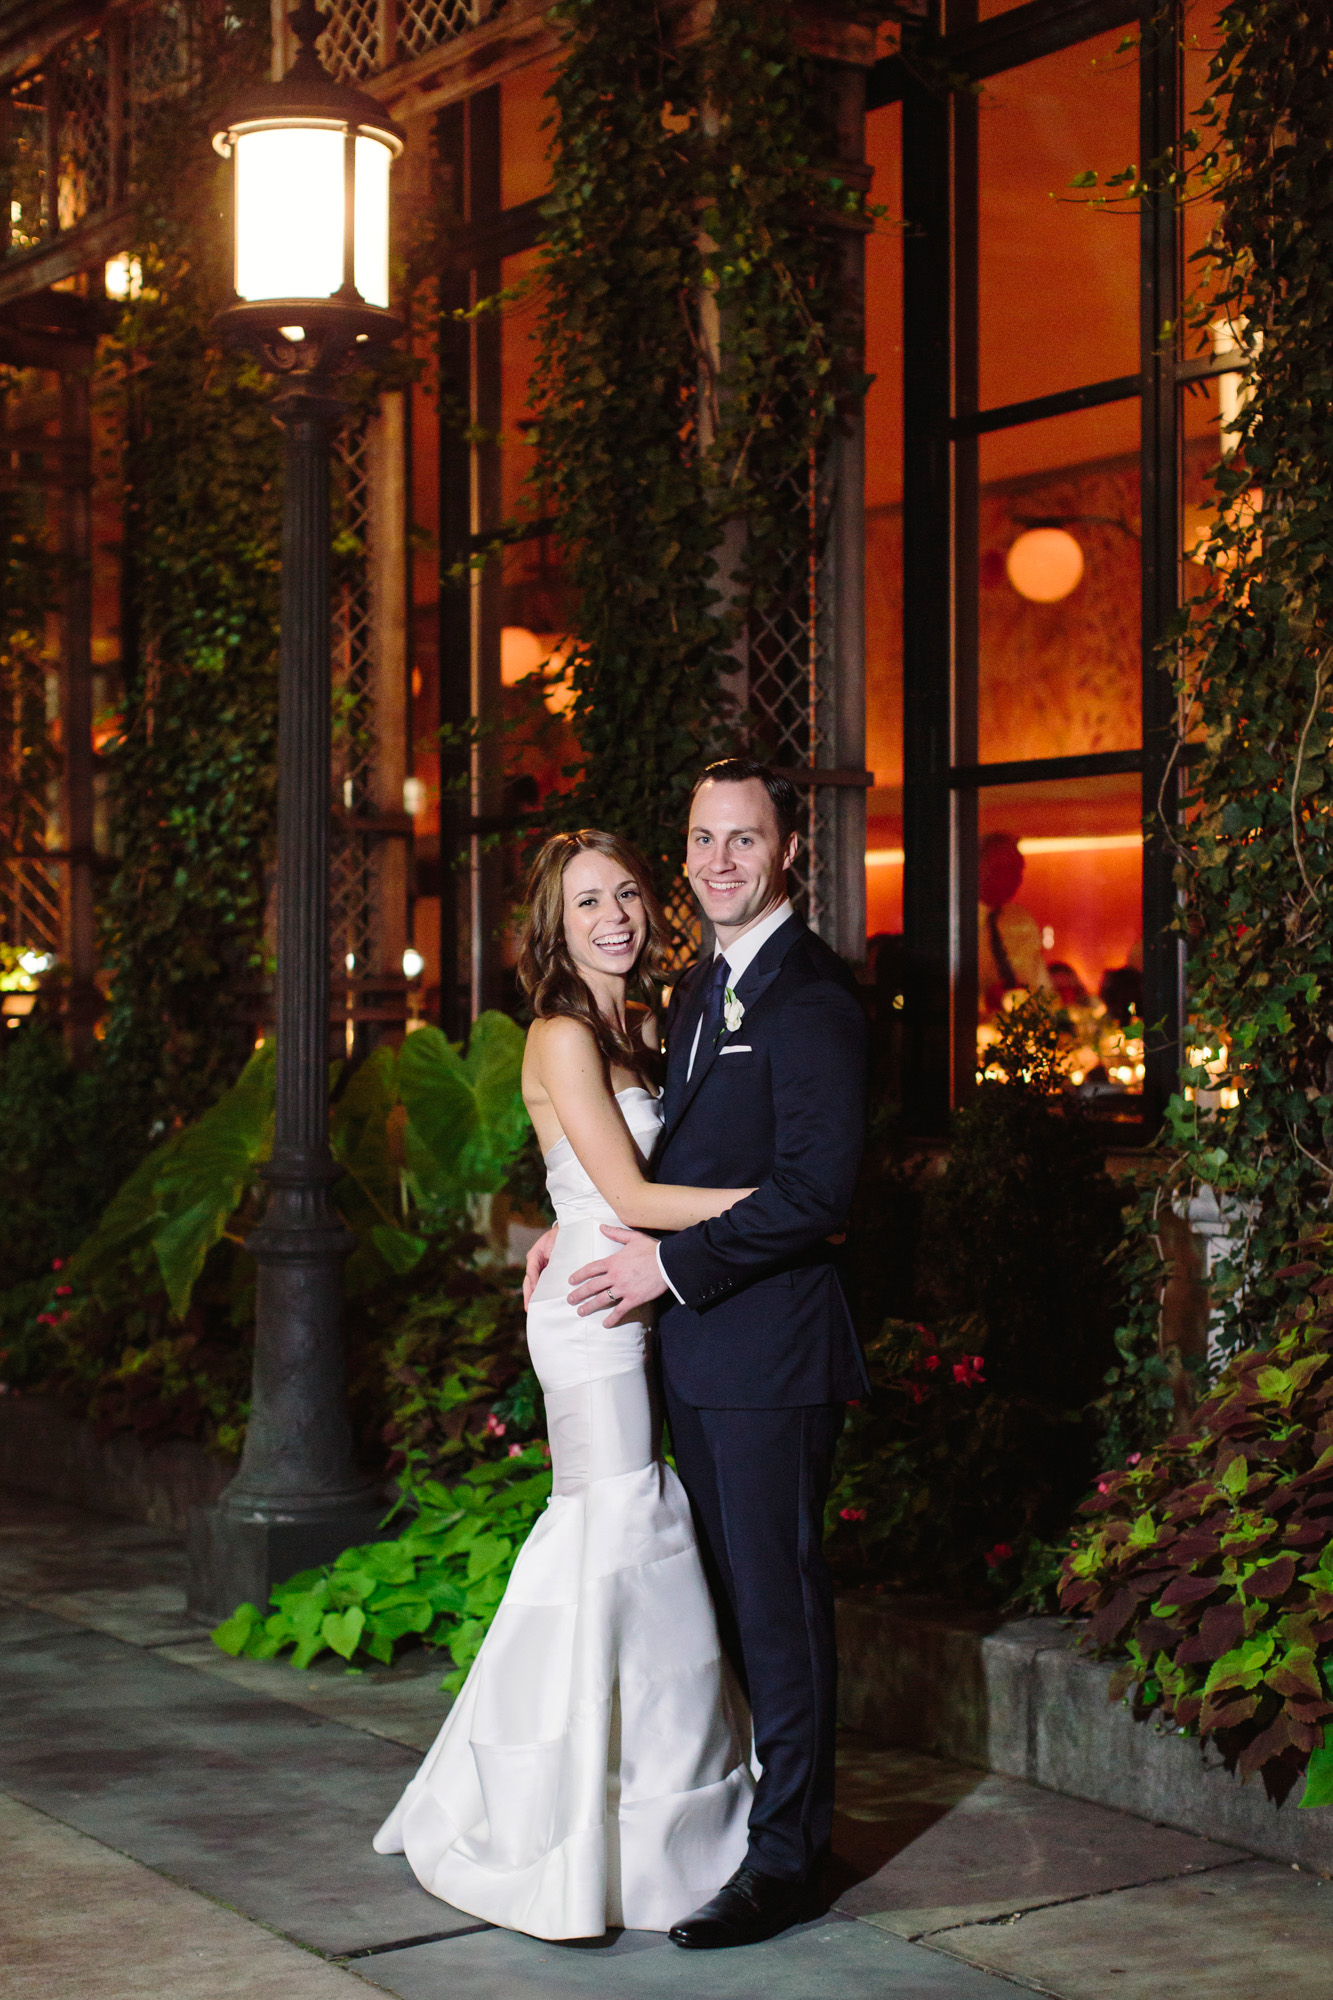 64_Ali_Lloyd_Bryant_Park_Grill_Wedding_NYC_Tanya_Salazar_Photography_303.jpg